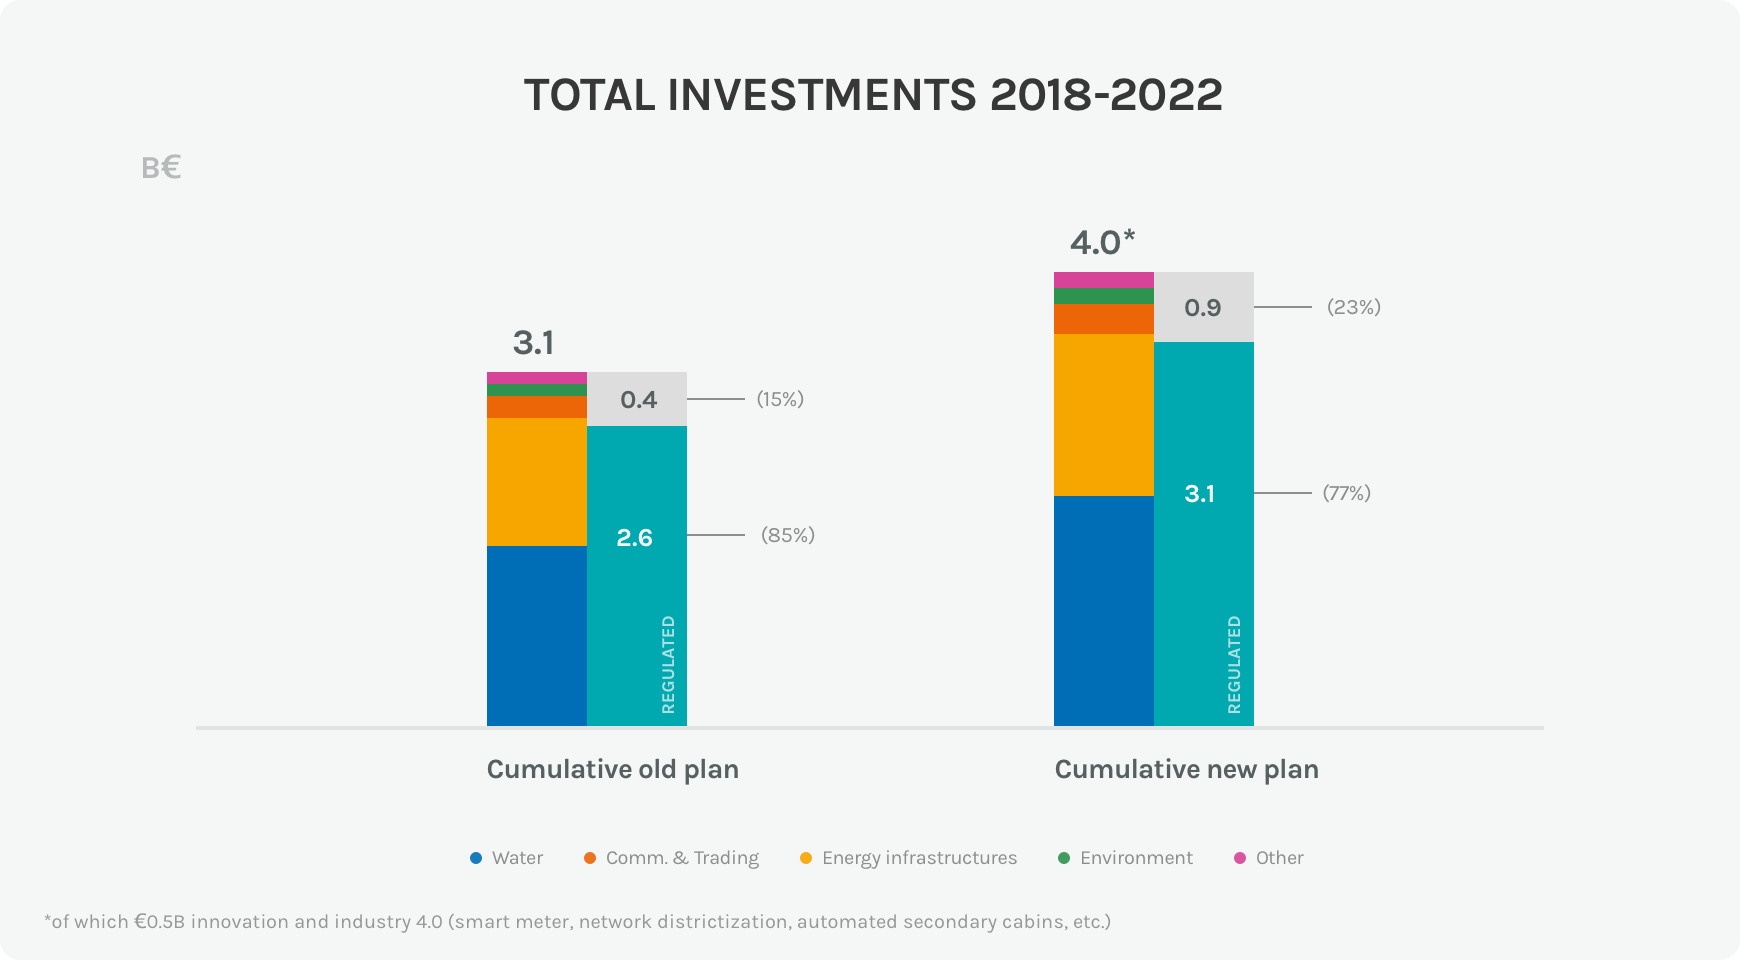 Diagram of the investments of the Acea Group 2018-2022